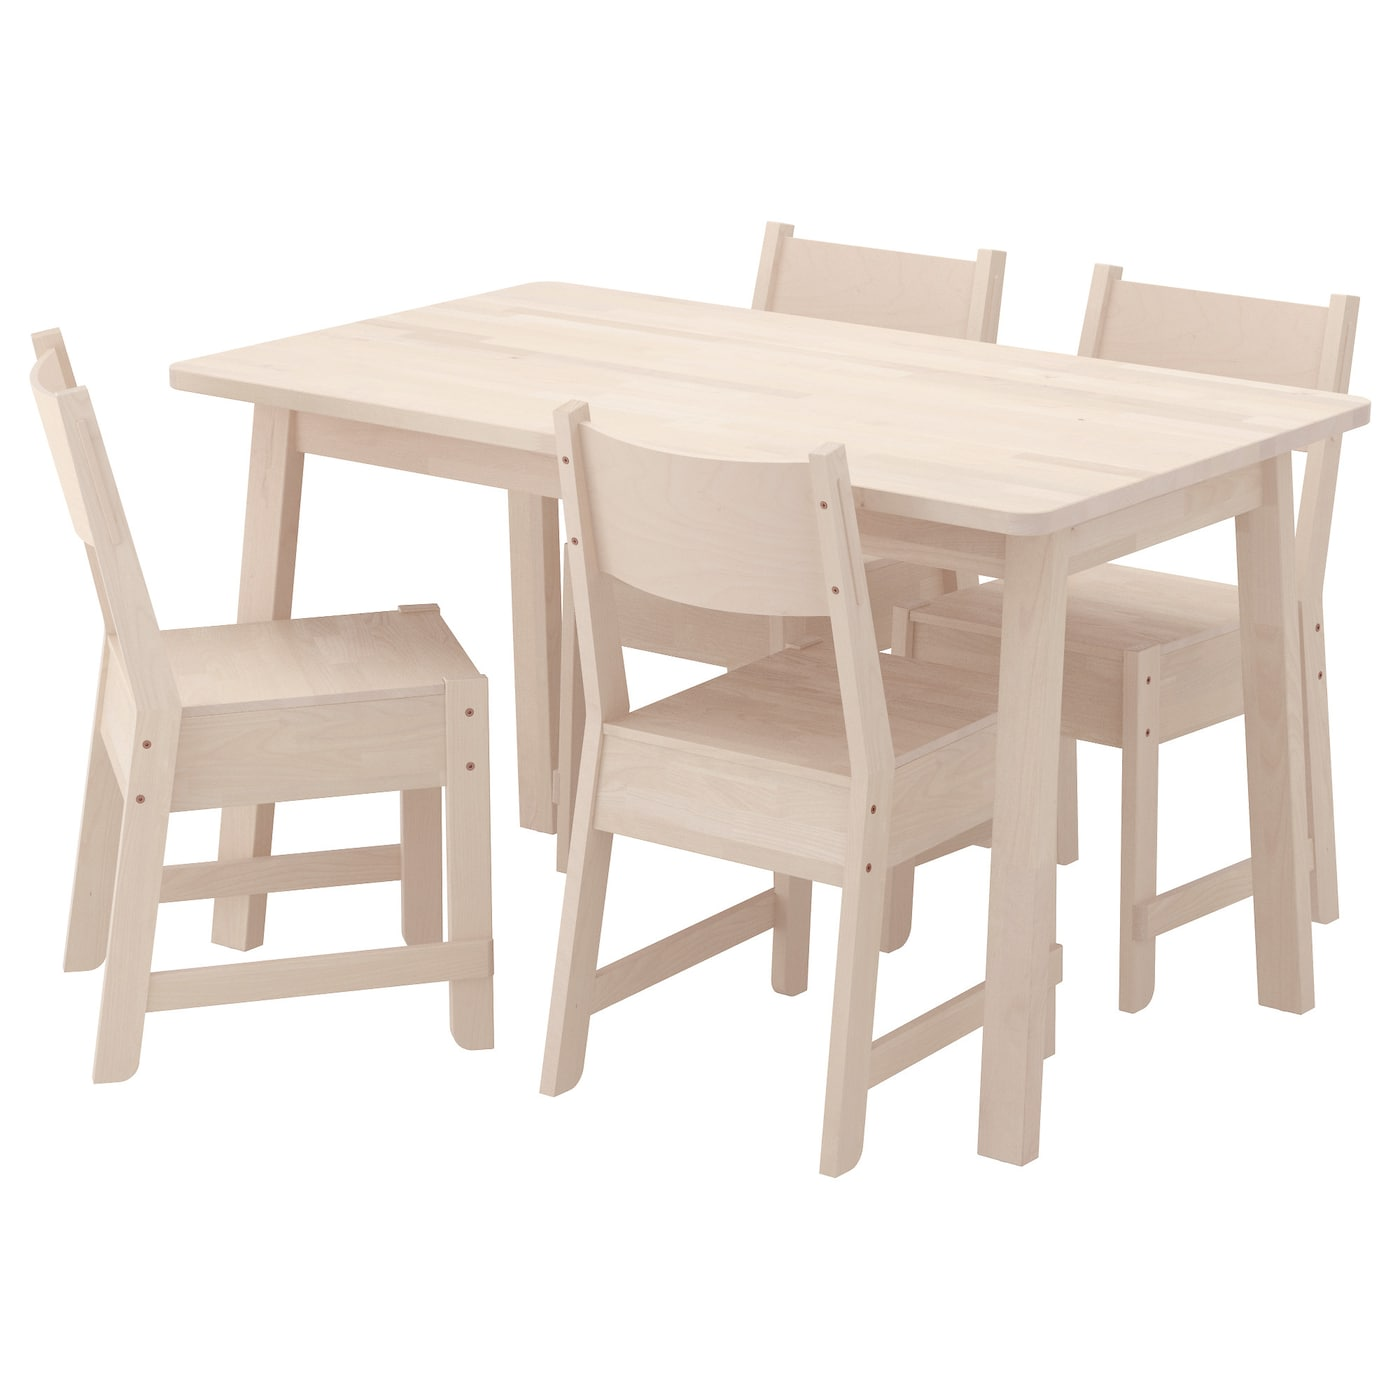 NORR…KER NORR…KER Table and 4 chairs White birch white birch 125